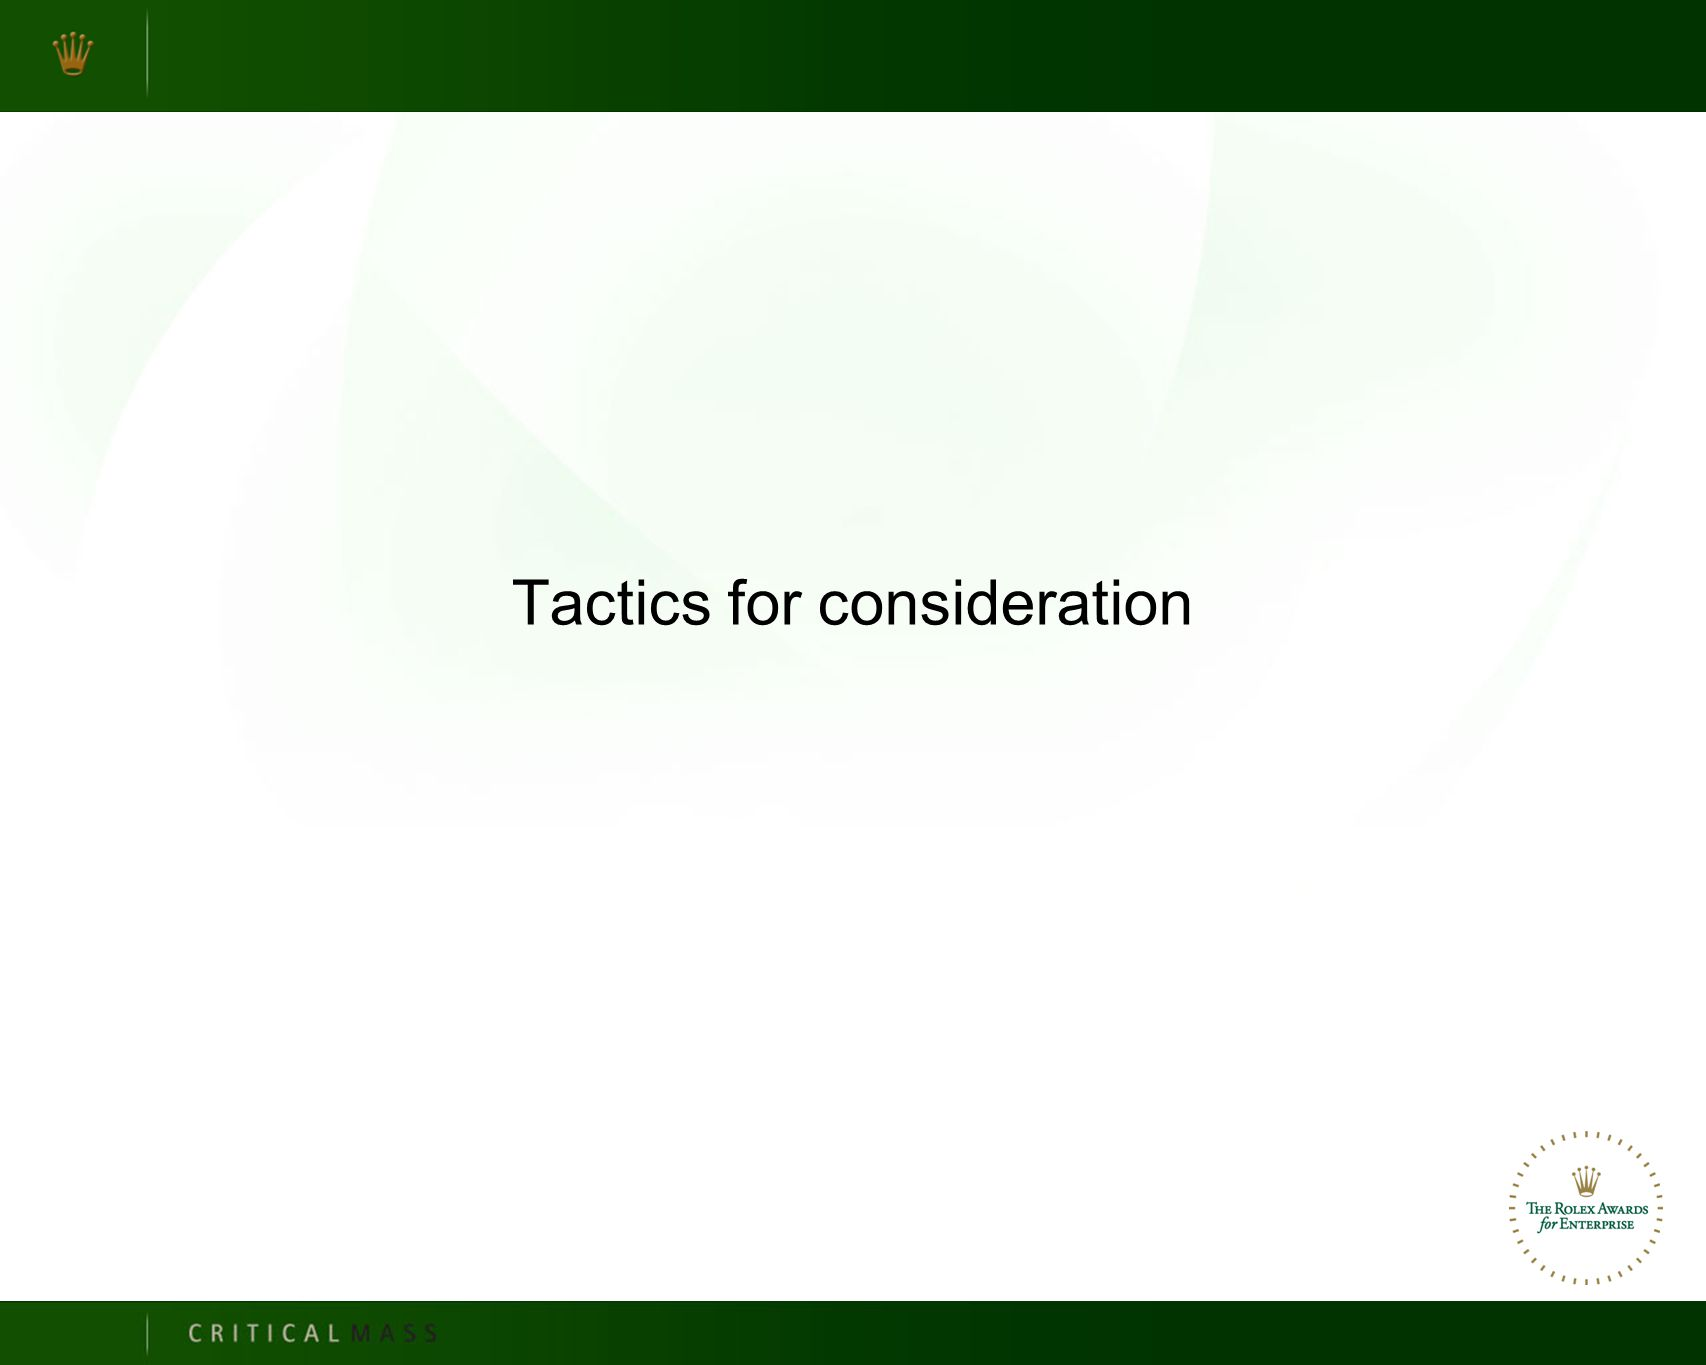 Tactics for consideration